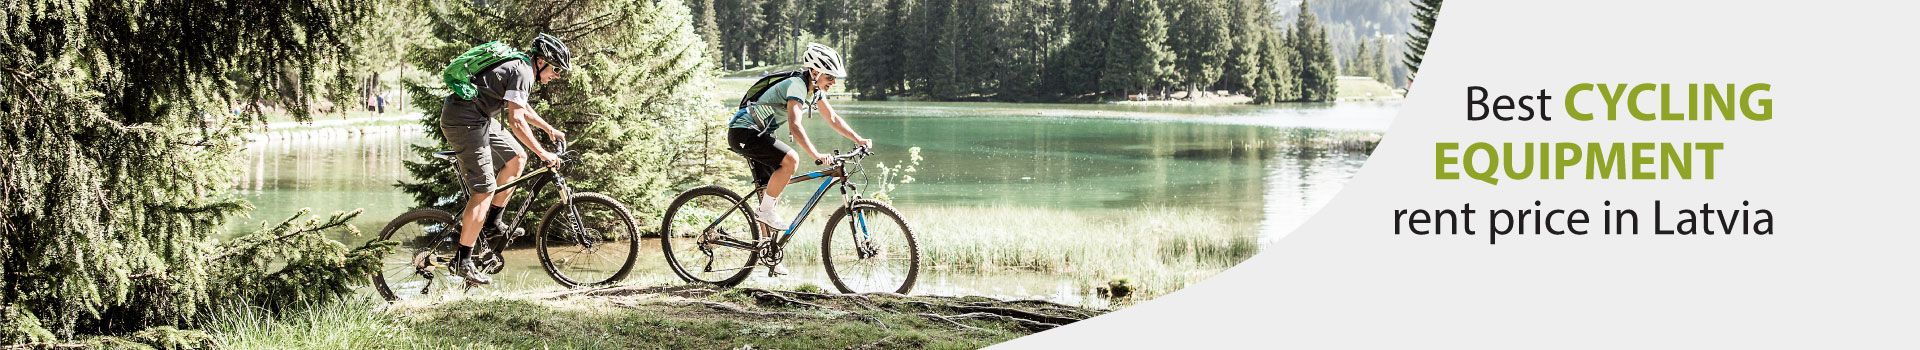 best-cycling-equipment-rent-price-in-latvia